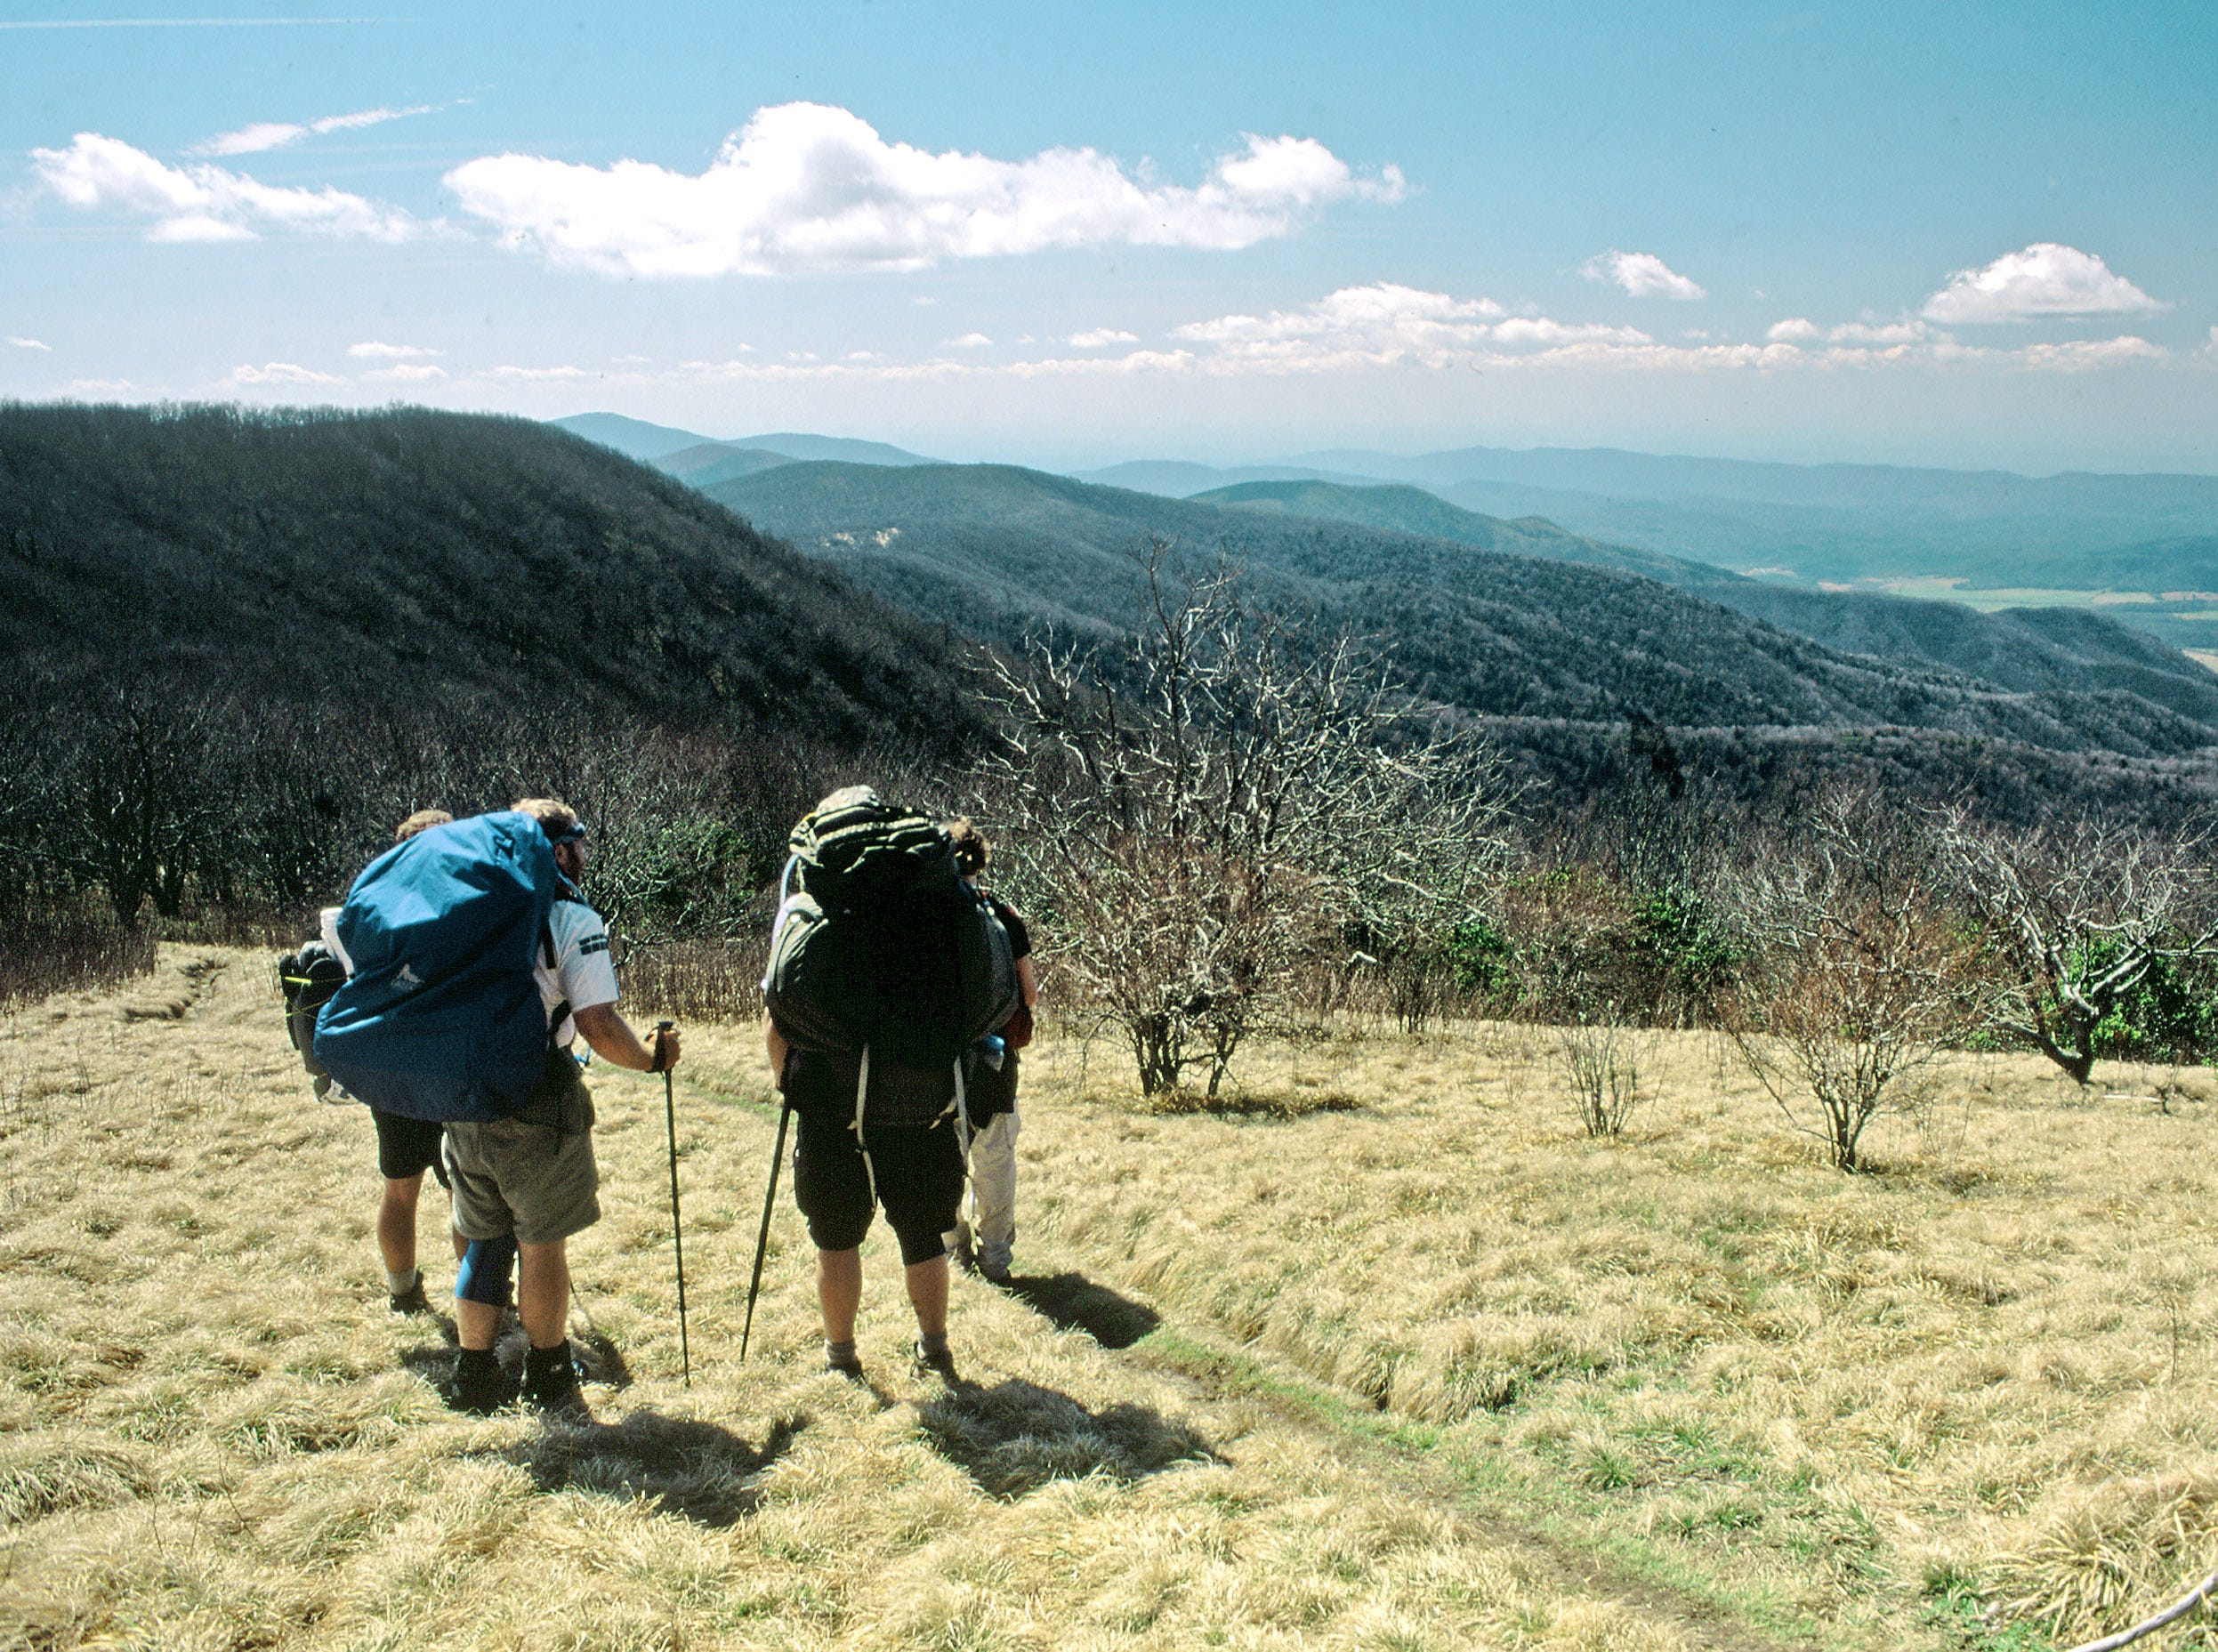 Appalachian Trail hikers take in a view of Cades Cove in April 2003 in the Great Smoky Mountains National Park. This portion of the AT is part of the hike from Newfound Gap to the Hazel Creek embayment via the Jenkins Ridge Trail.